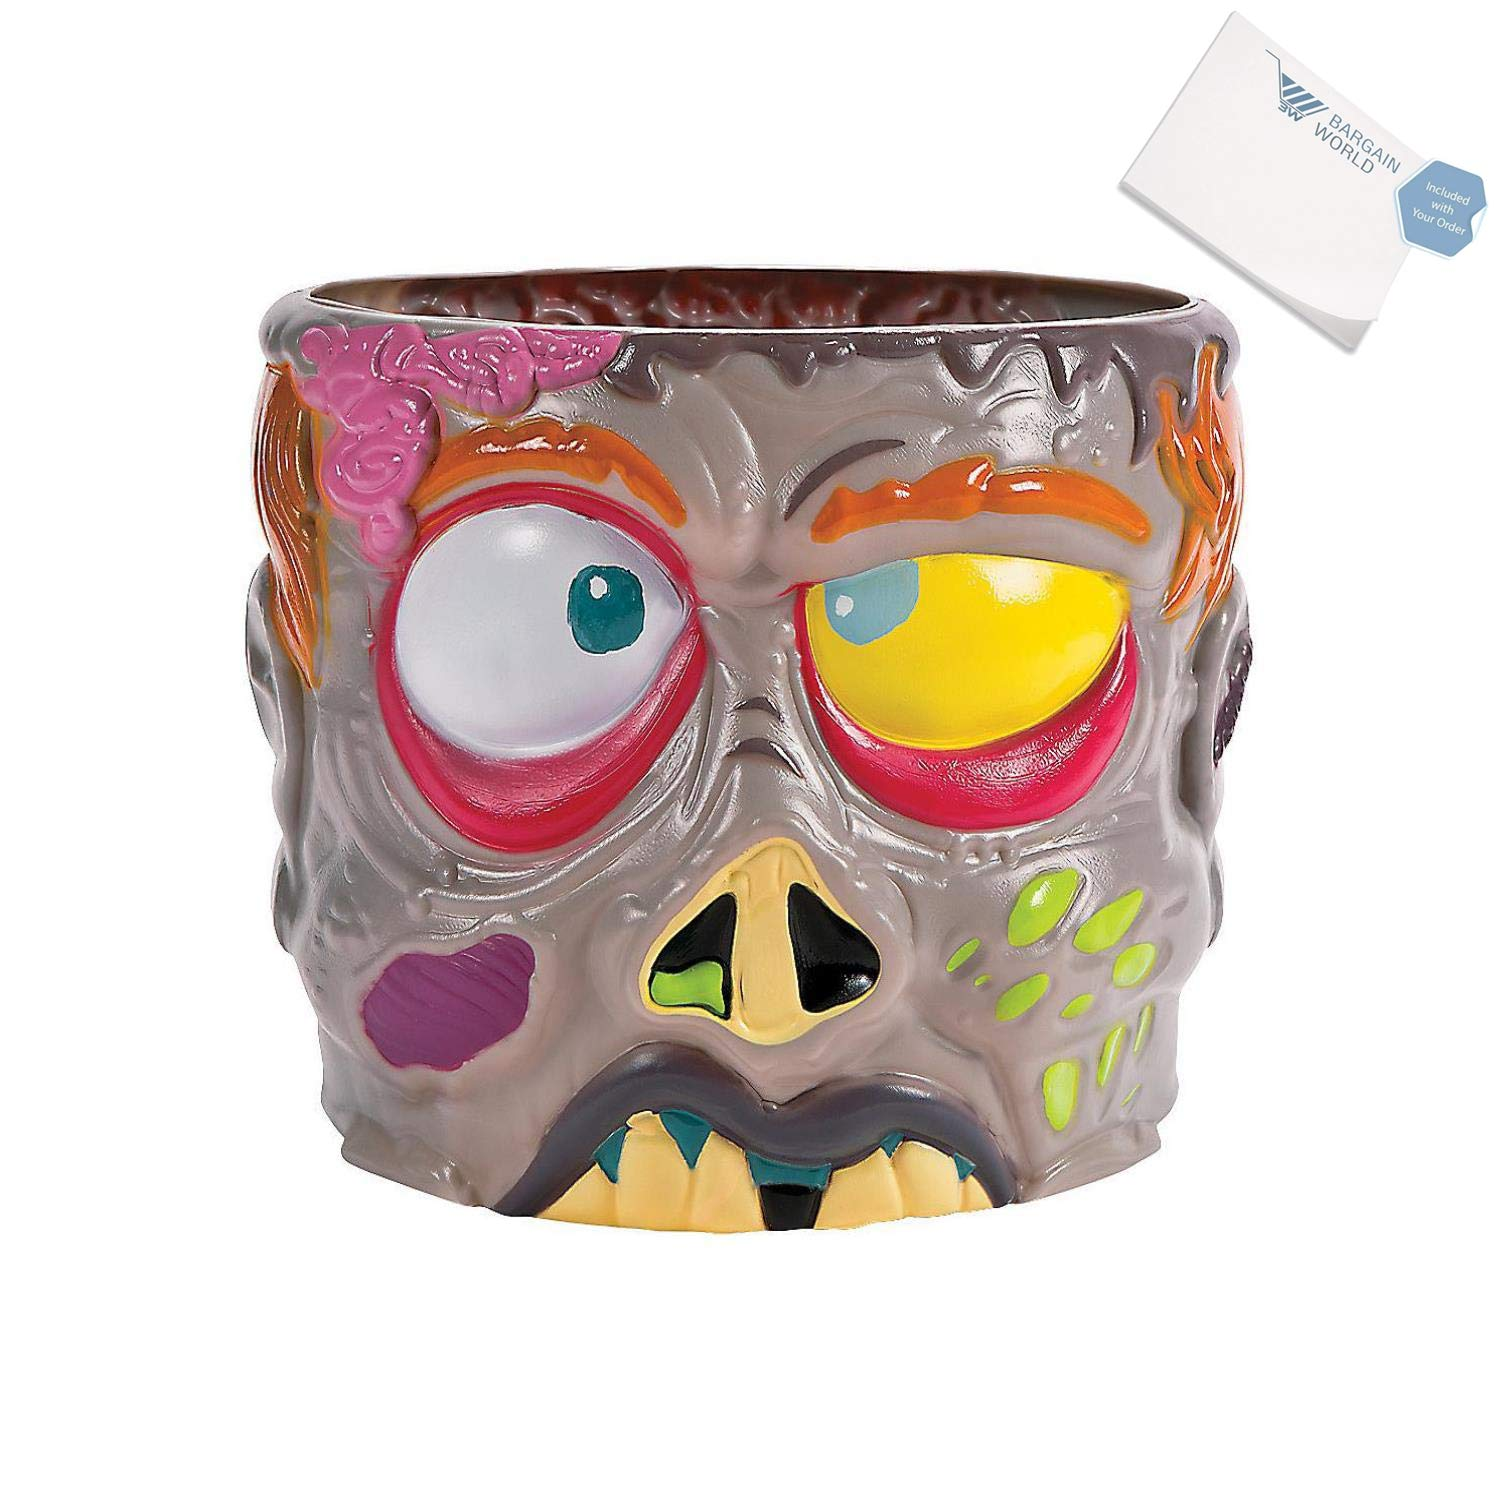 Bargain World Plastic Zombie Punch Bowl (With Sticky Notes)